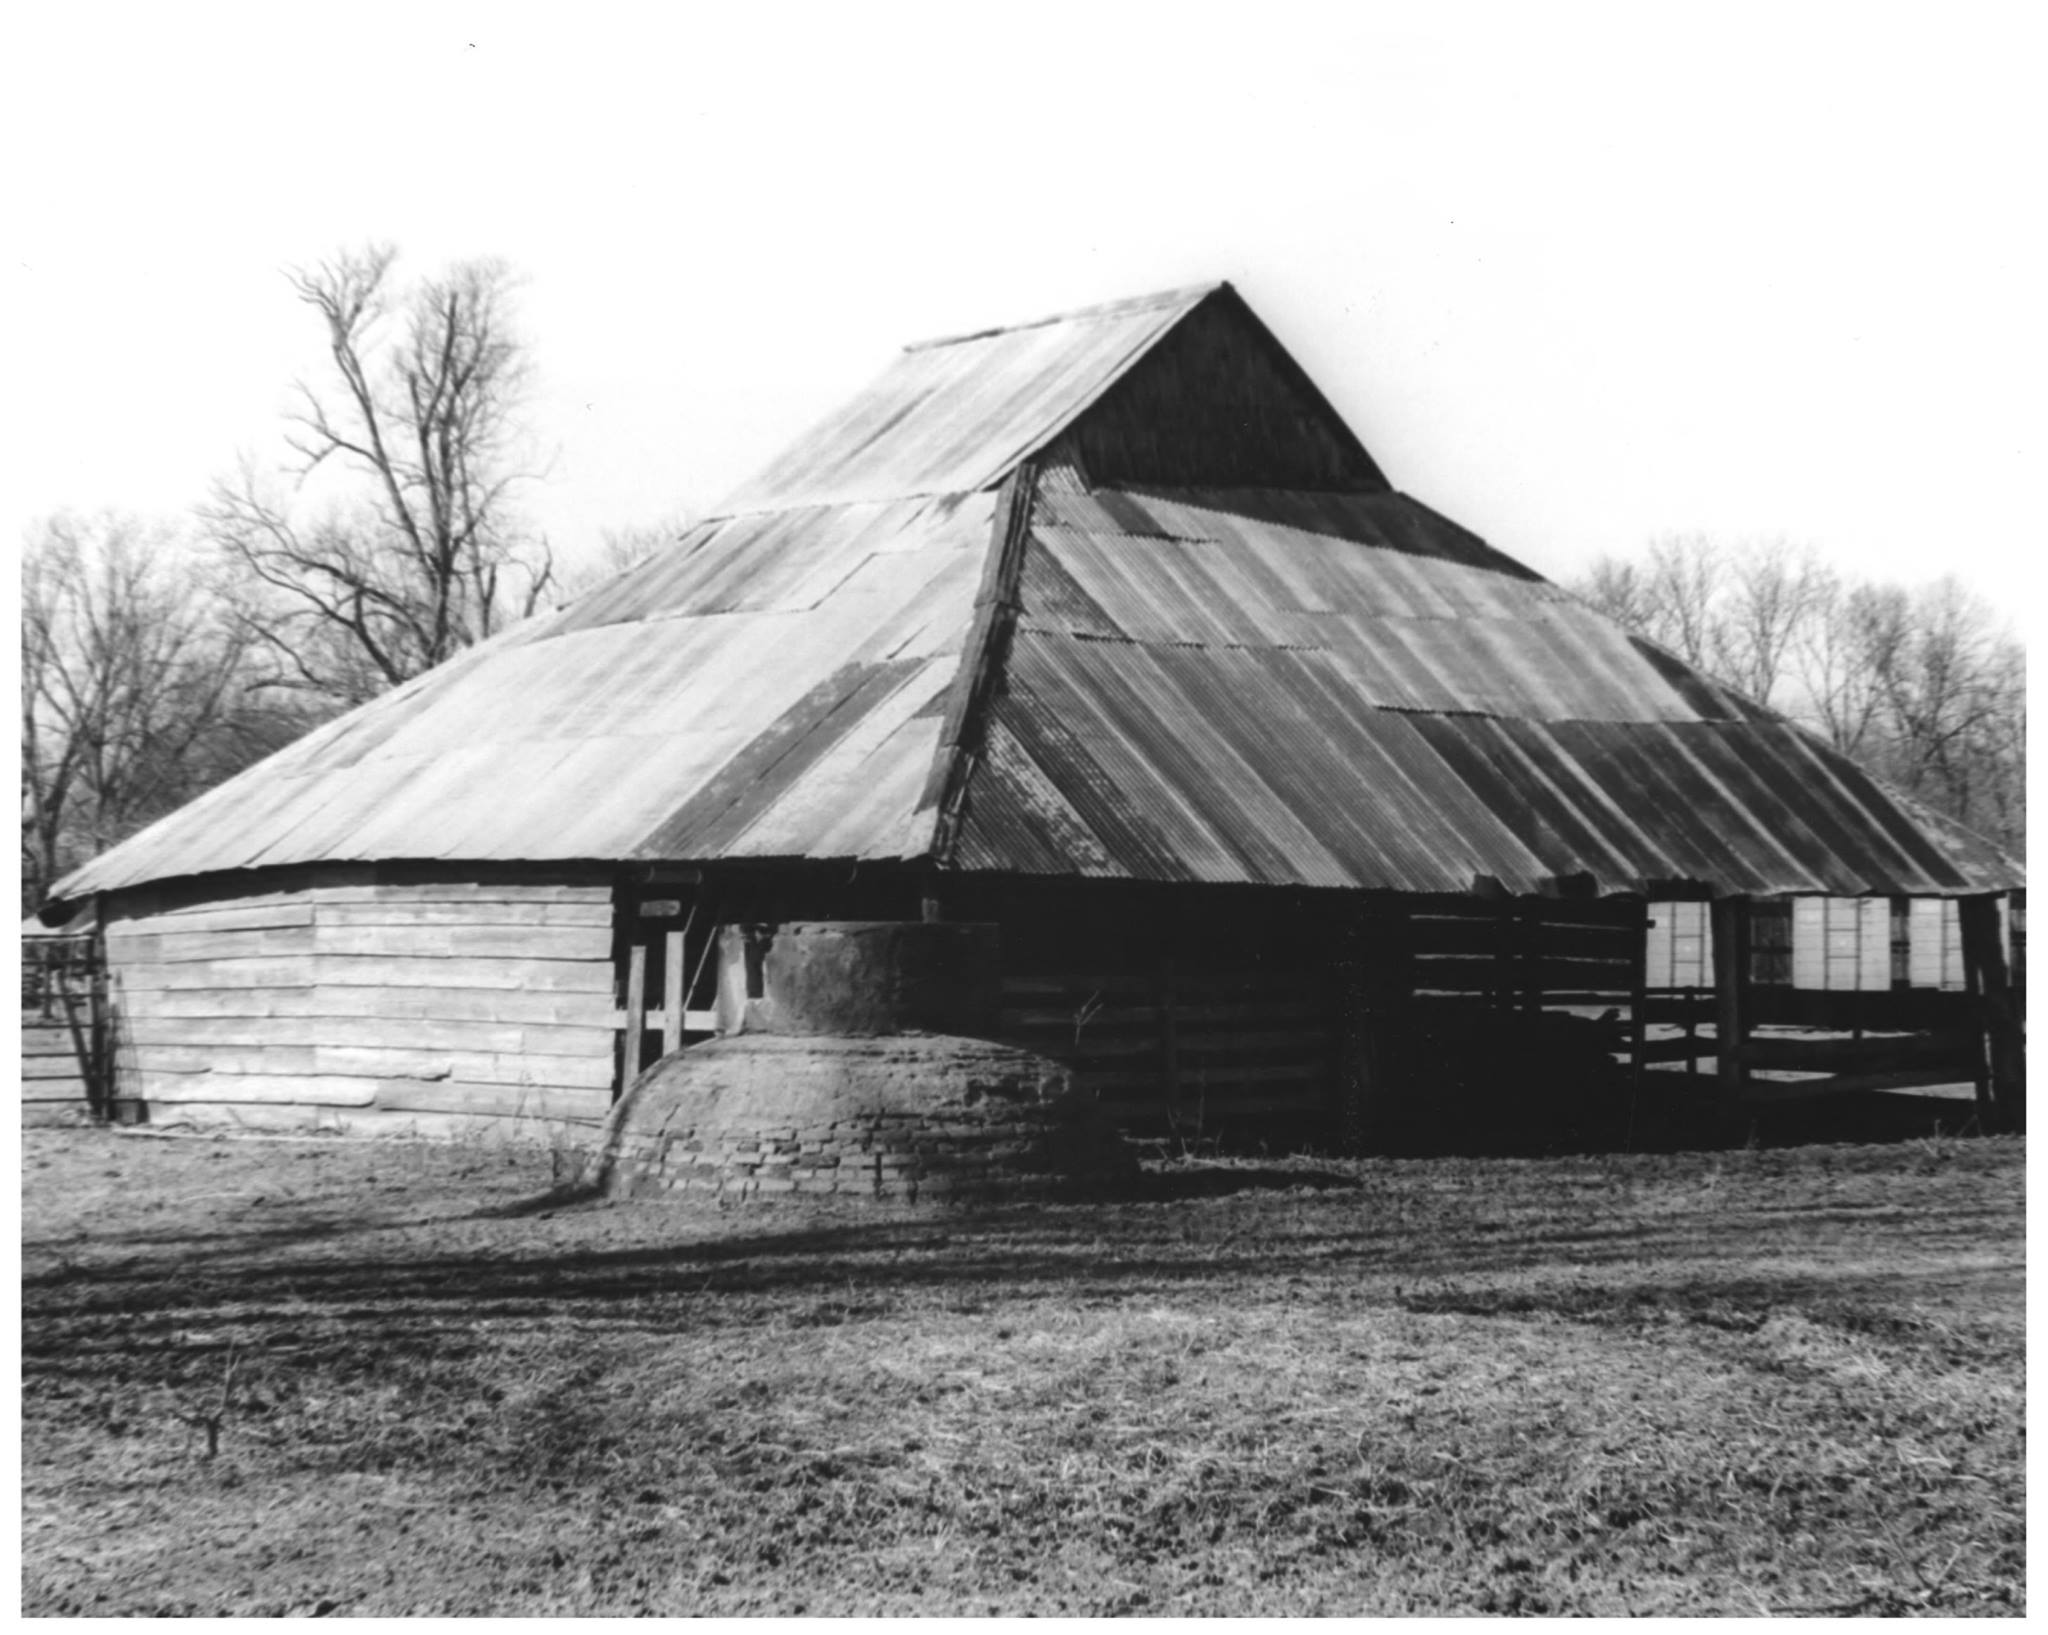 The wooden Oakland Corn Crib has a peaked metal roof.